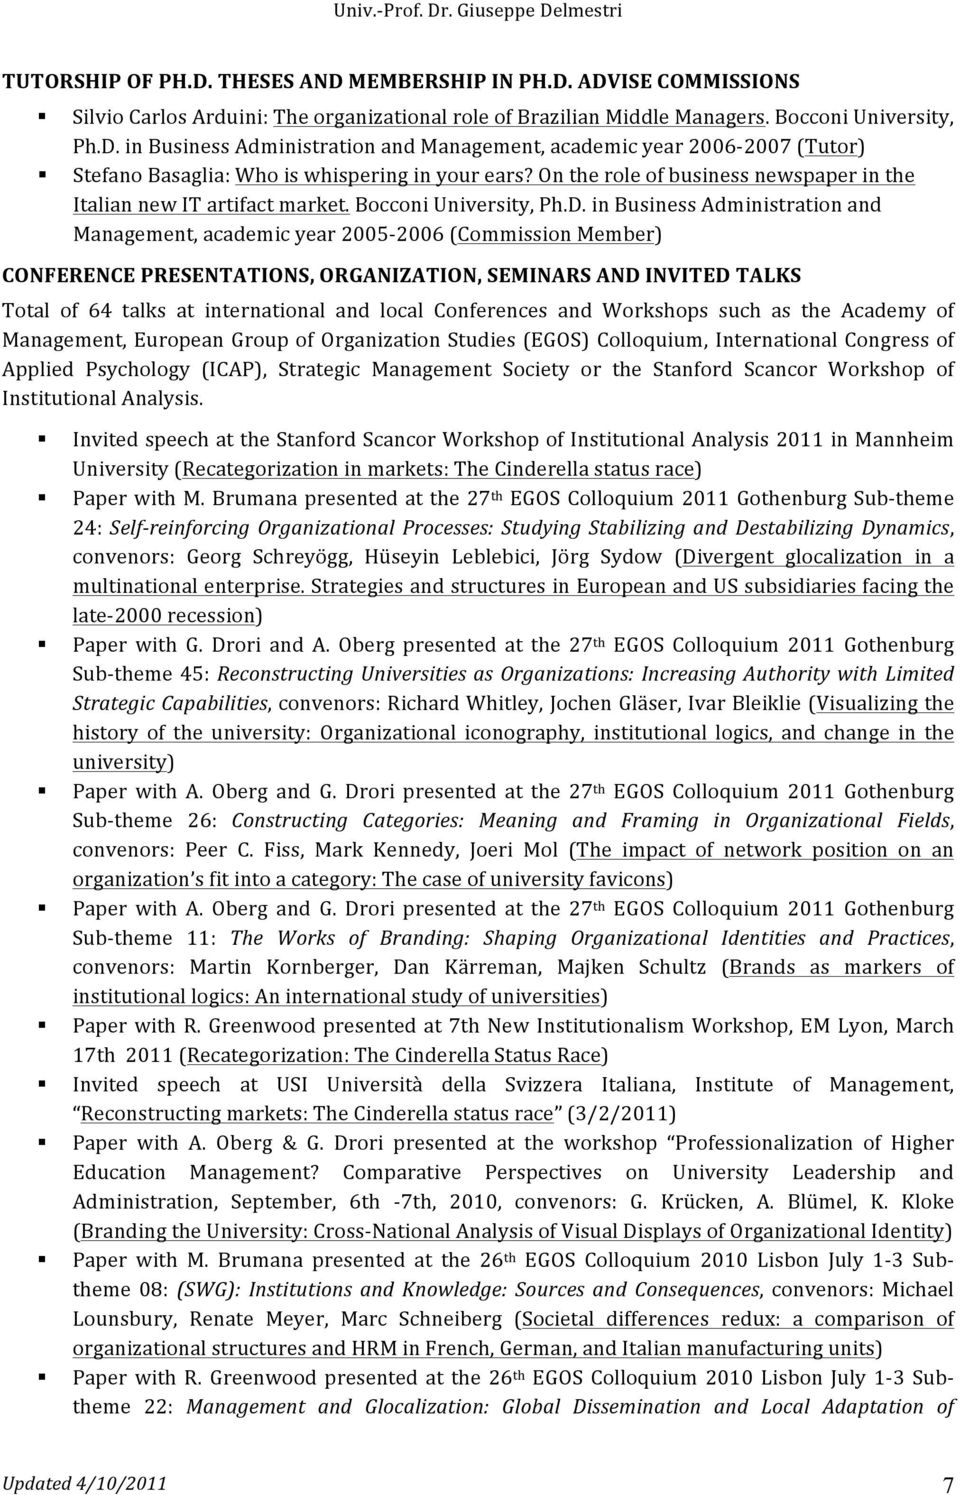 in Business Administration and Management, academic year 2005-2006 (Commission Member) CONFERENCE PRESENTATIONS, ORGANIZATION, SEMINARS AND INVITED TALKS Total of 64 talks at international and local